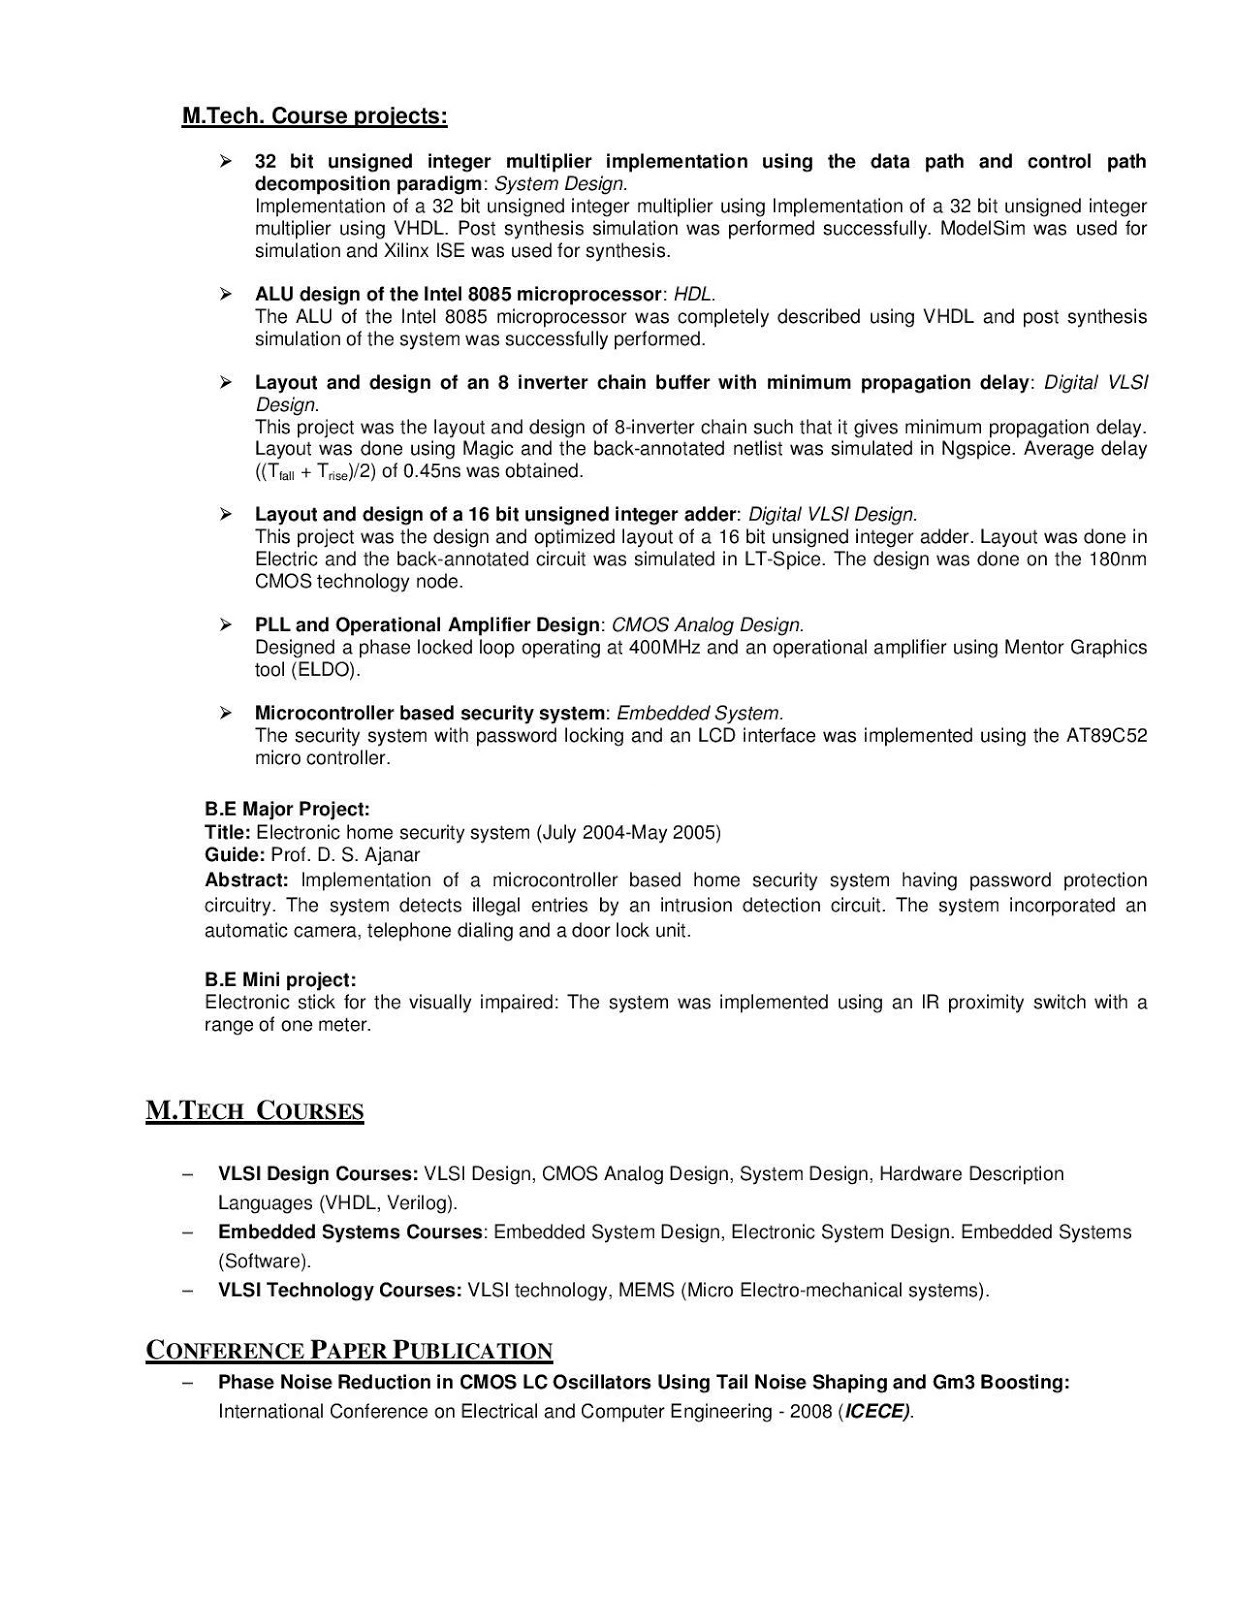 Coursework on a resume example – 100% original papers : jungbrunnen ...